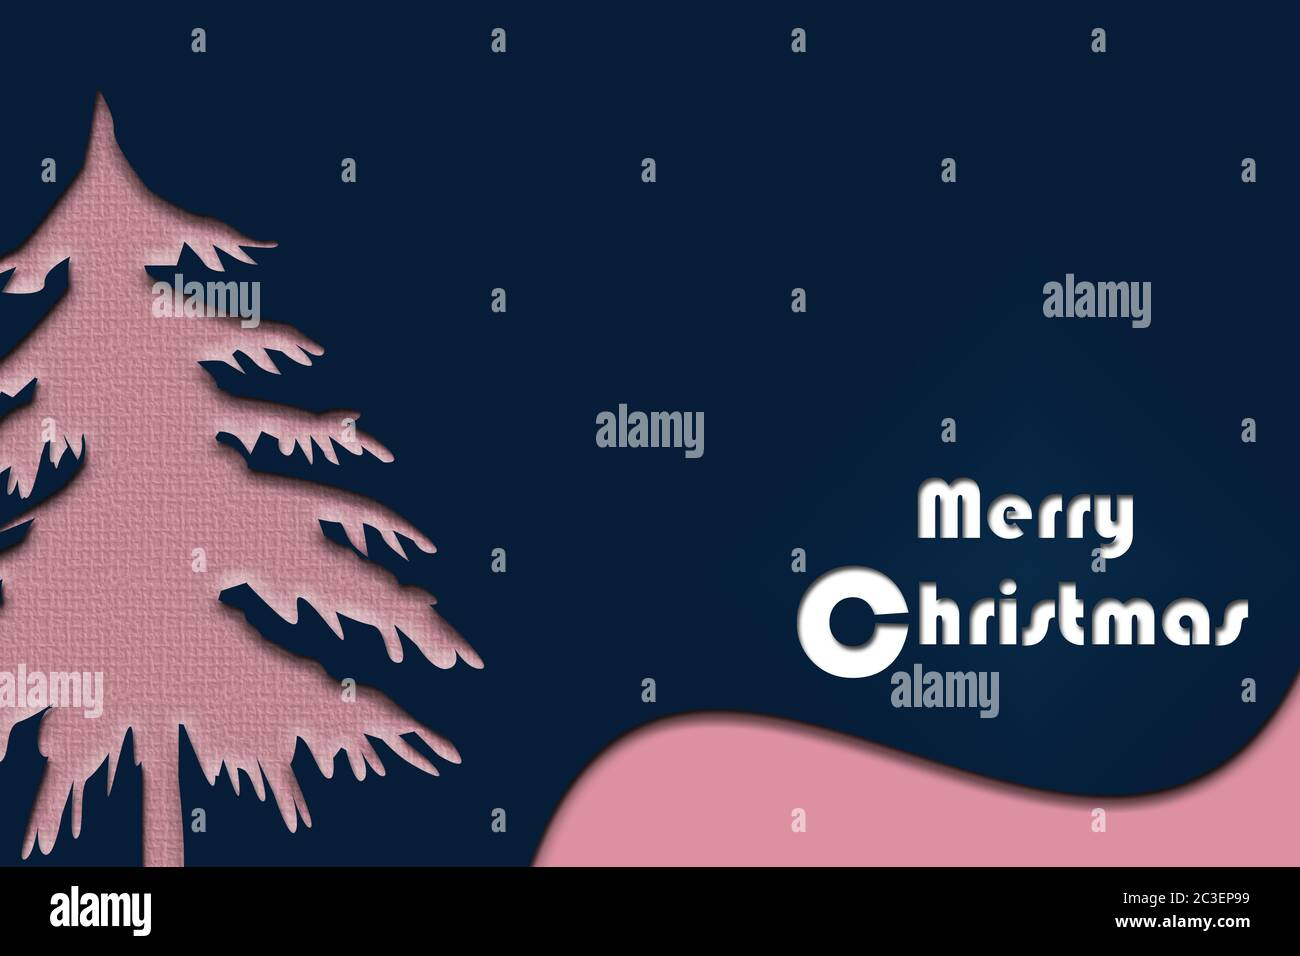 Contemporary Stylish Modern Christmas Card In Blue Pink Scandinavian Trendy Colours With Tree And Text Merry Christmas Minimal Template Design For Greeting Cards Banner Marketing 3d Illustration Stock Photo Alamy